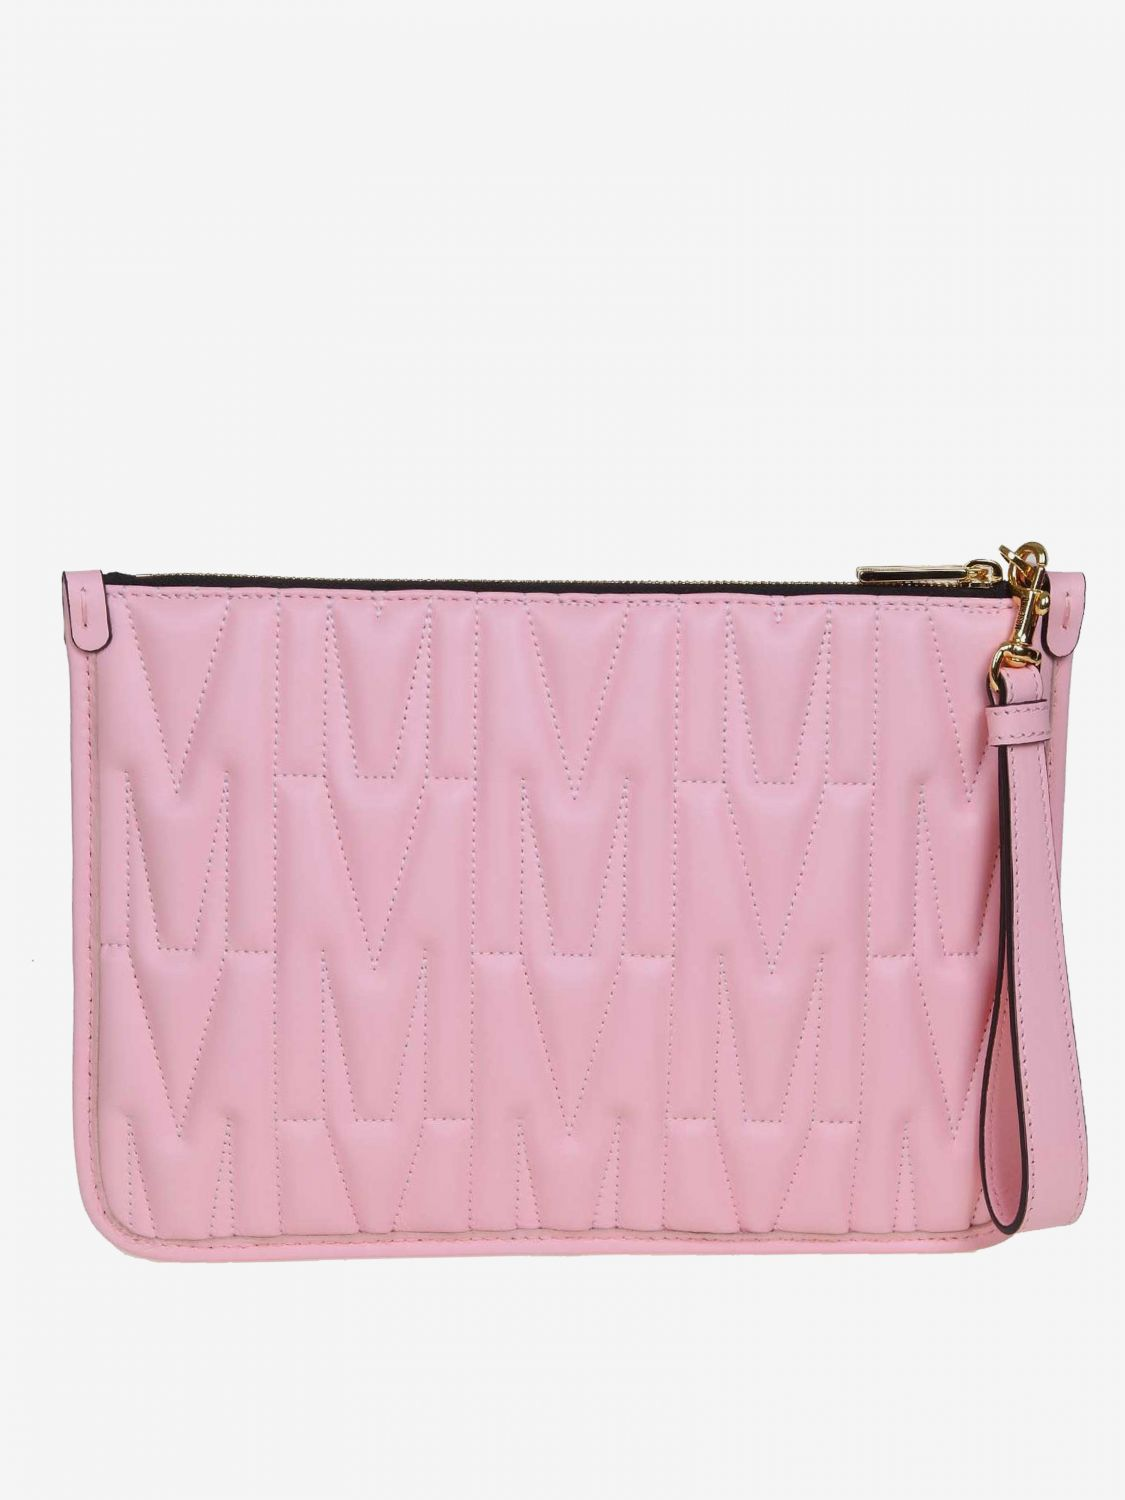 Moschino Couture clutch bag in quilted leather with big monogram pink 2